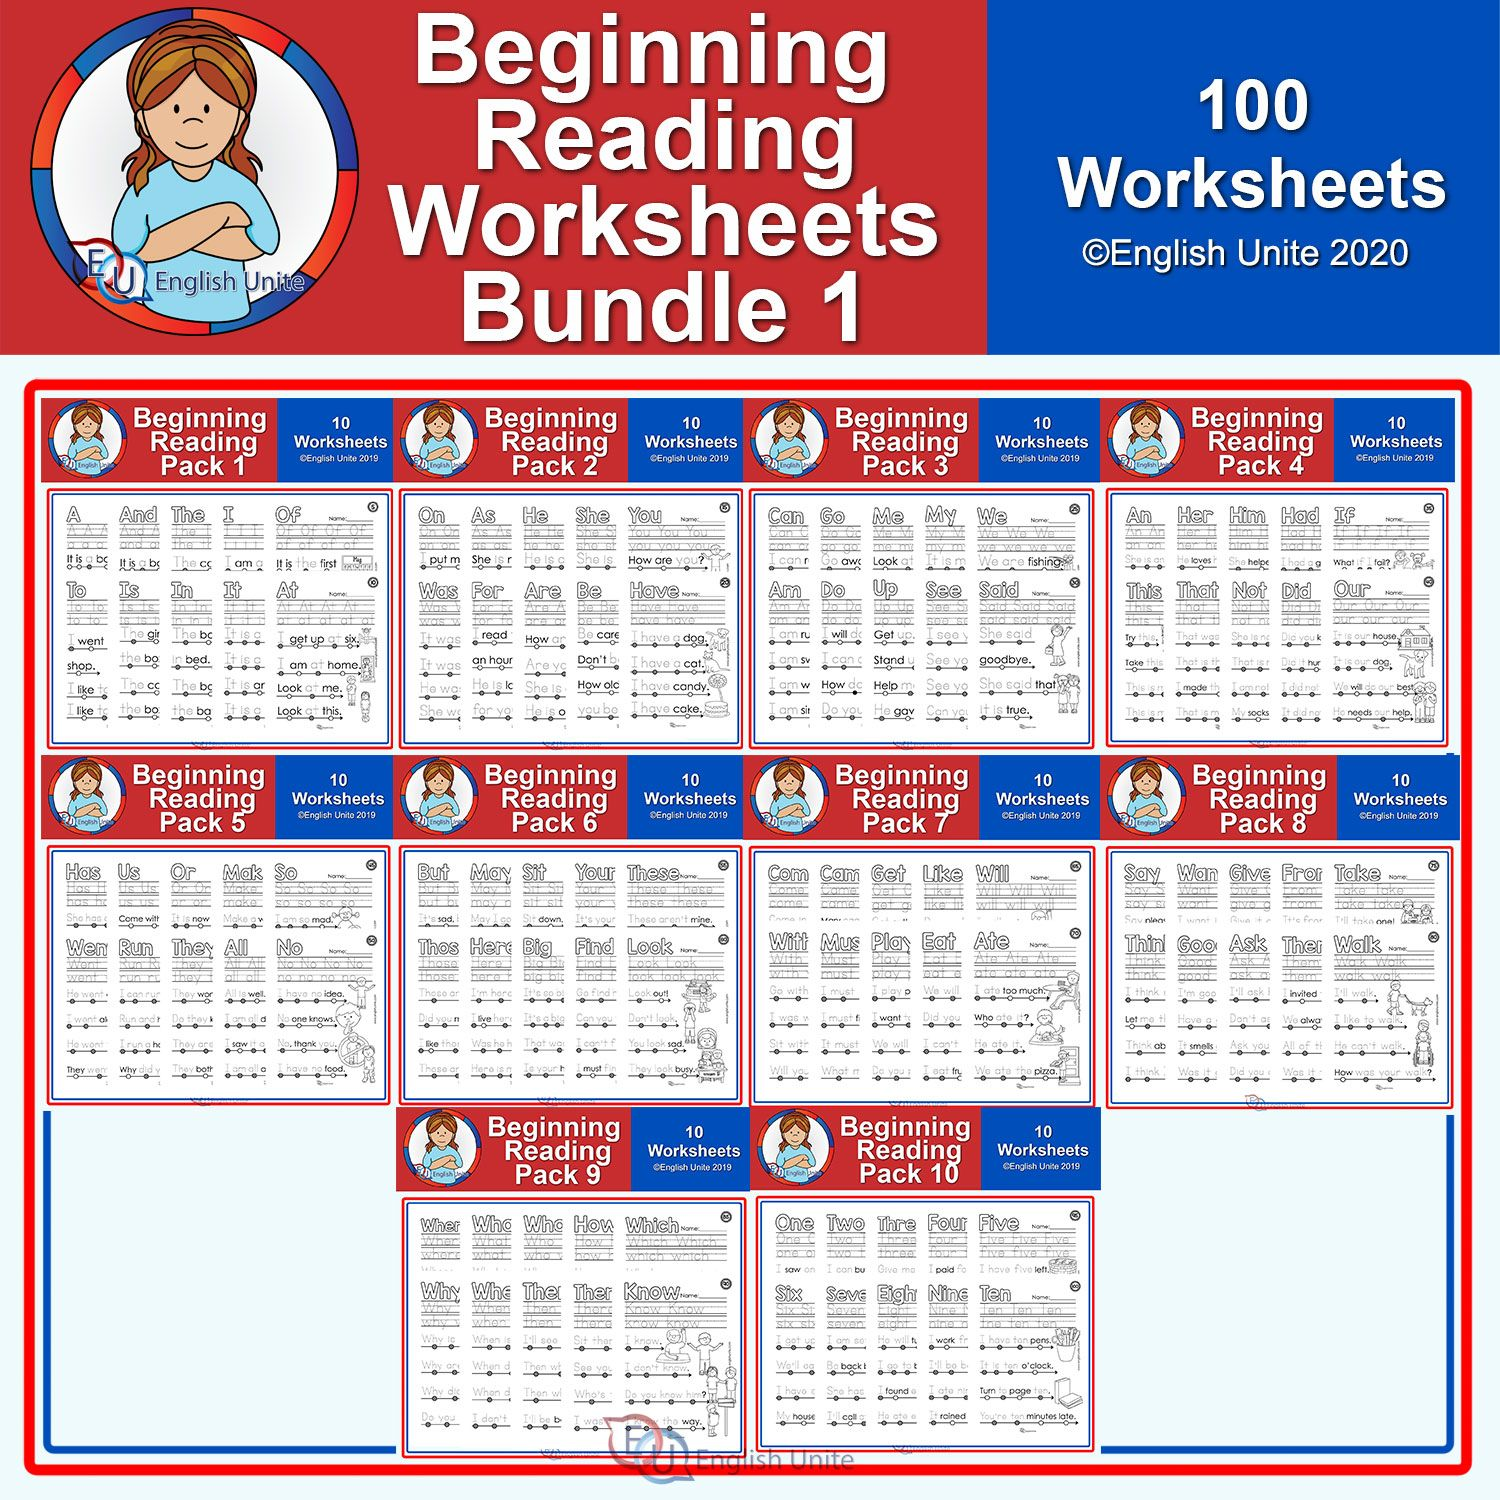 Beginning Reading Worksheet Bundle 1 In